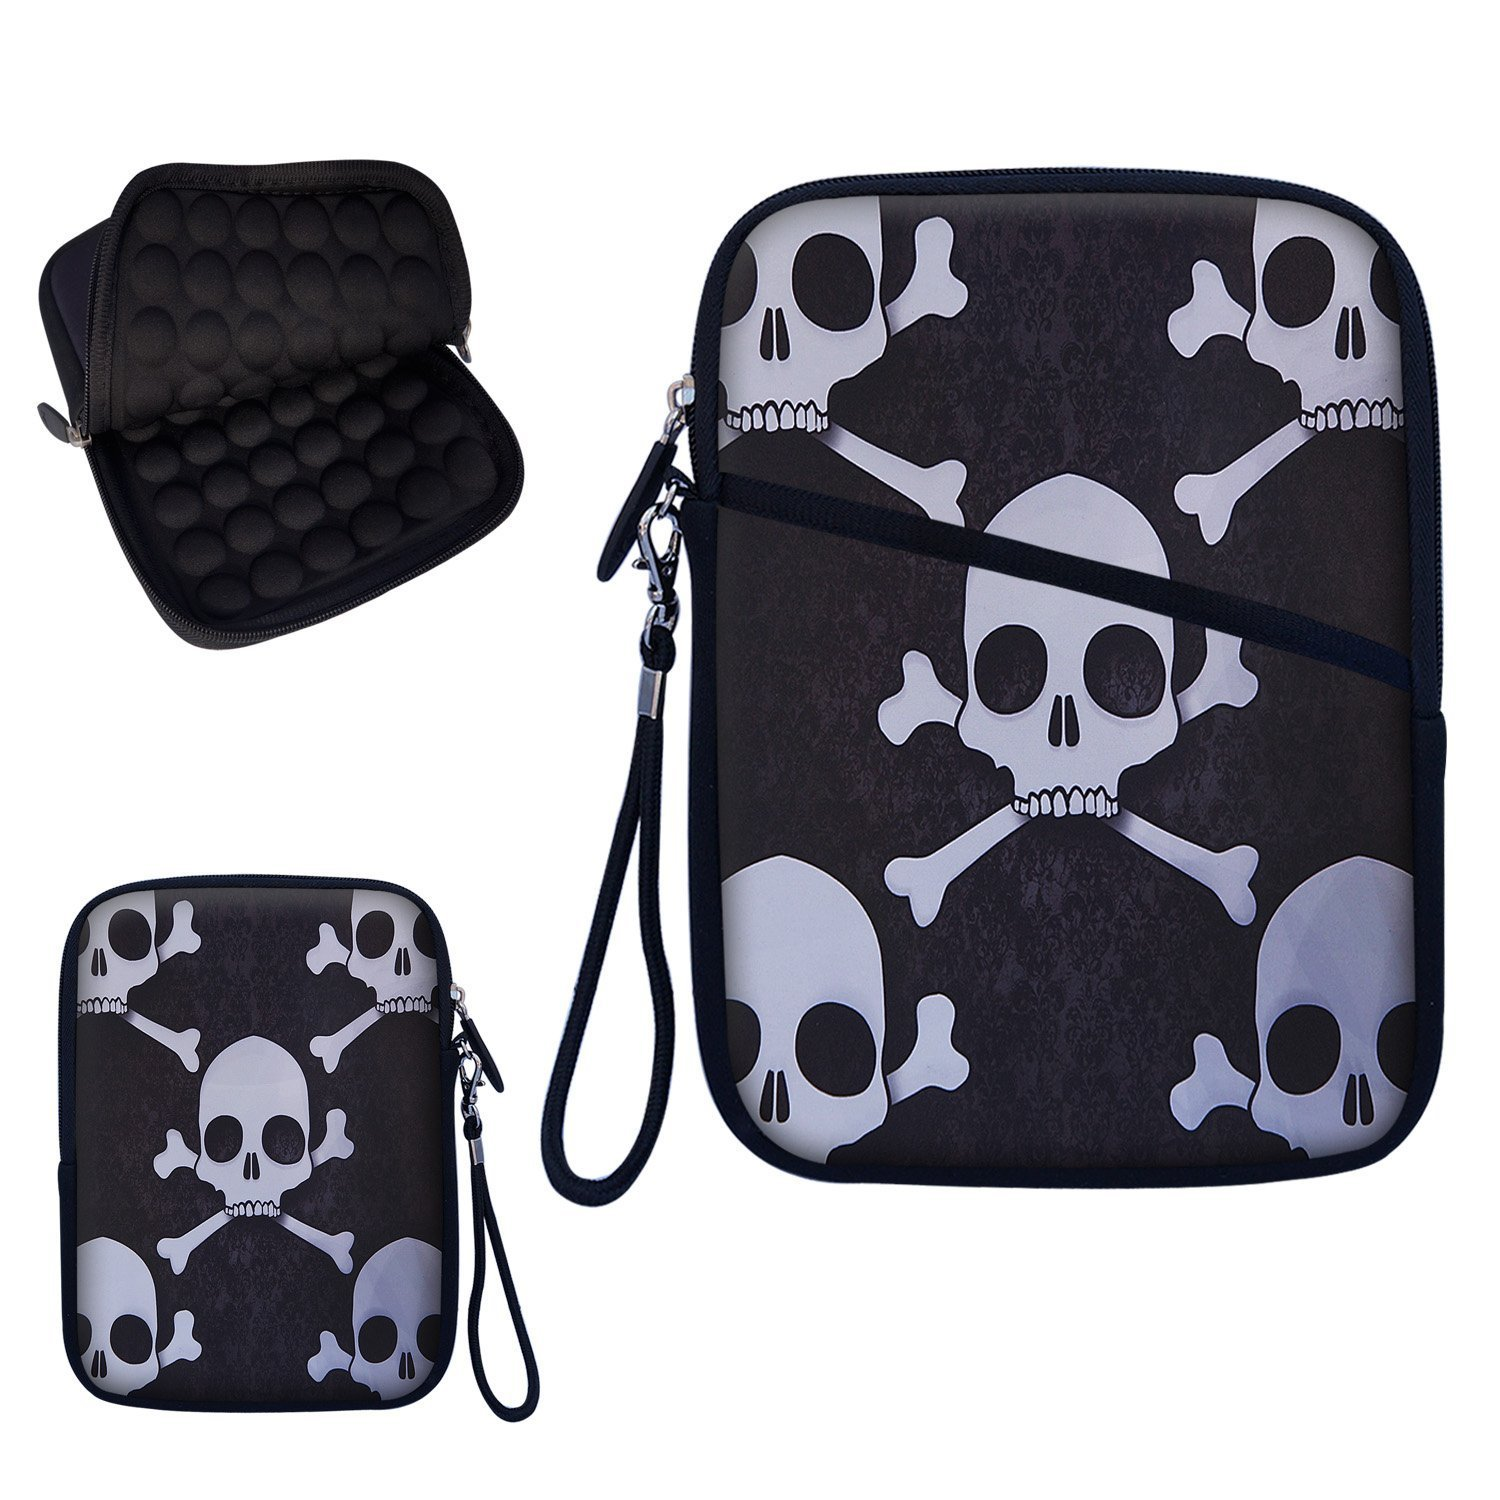 """Neoprene Super Padded Bubble Sleeve Case Cover with Removable Carrying Handle Fits Apple iPad Mini / Amazon Kindle Fire HD / Google Nexus 7 / Samsung Galaxy / Asus / Acer / Archos and Similar Size 7"""" Tablet - Dark Skull Design"""